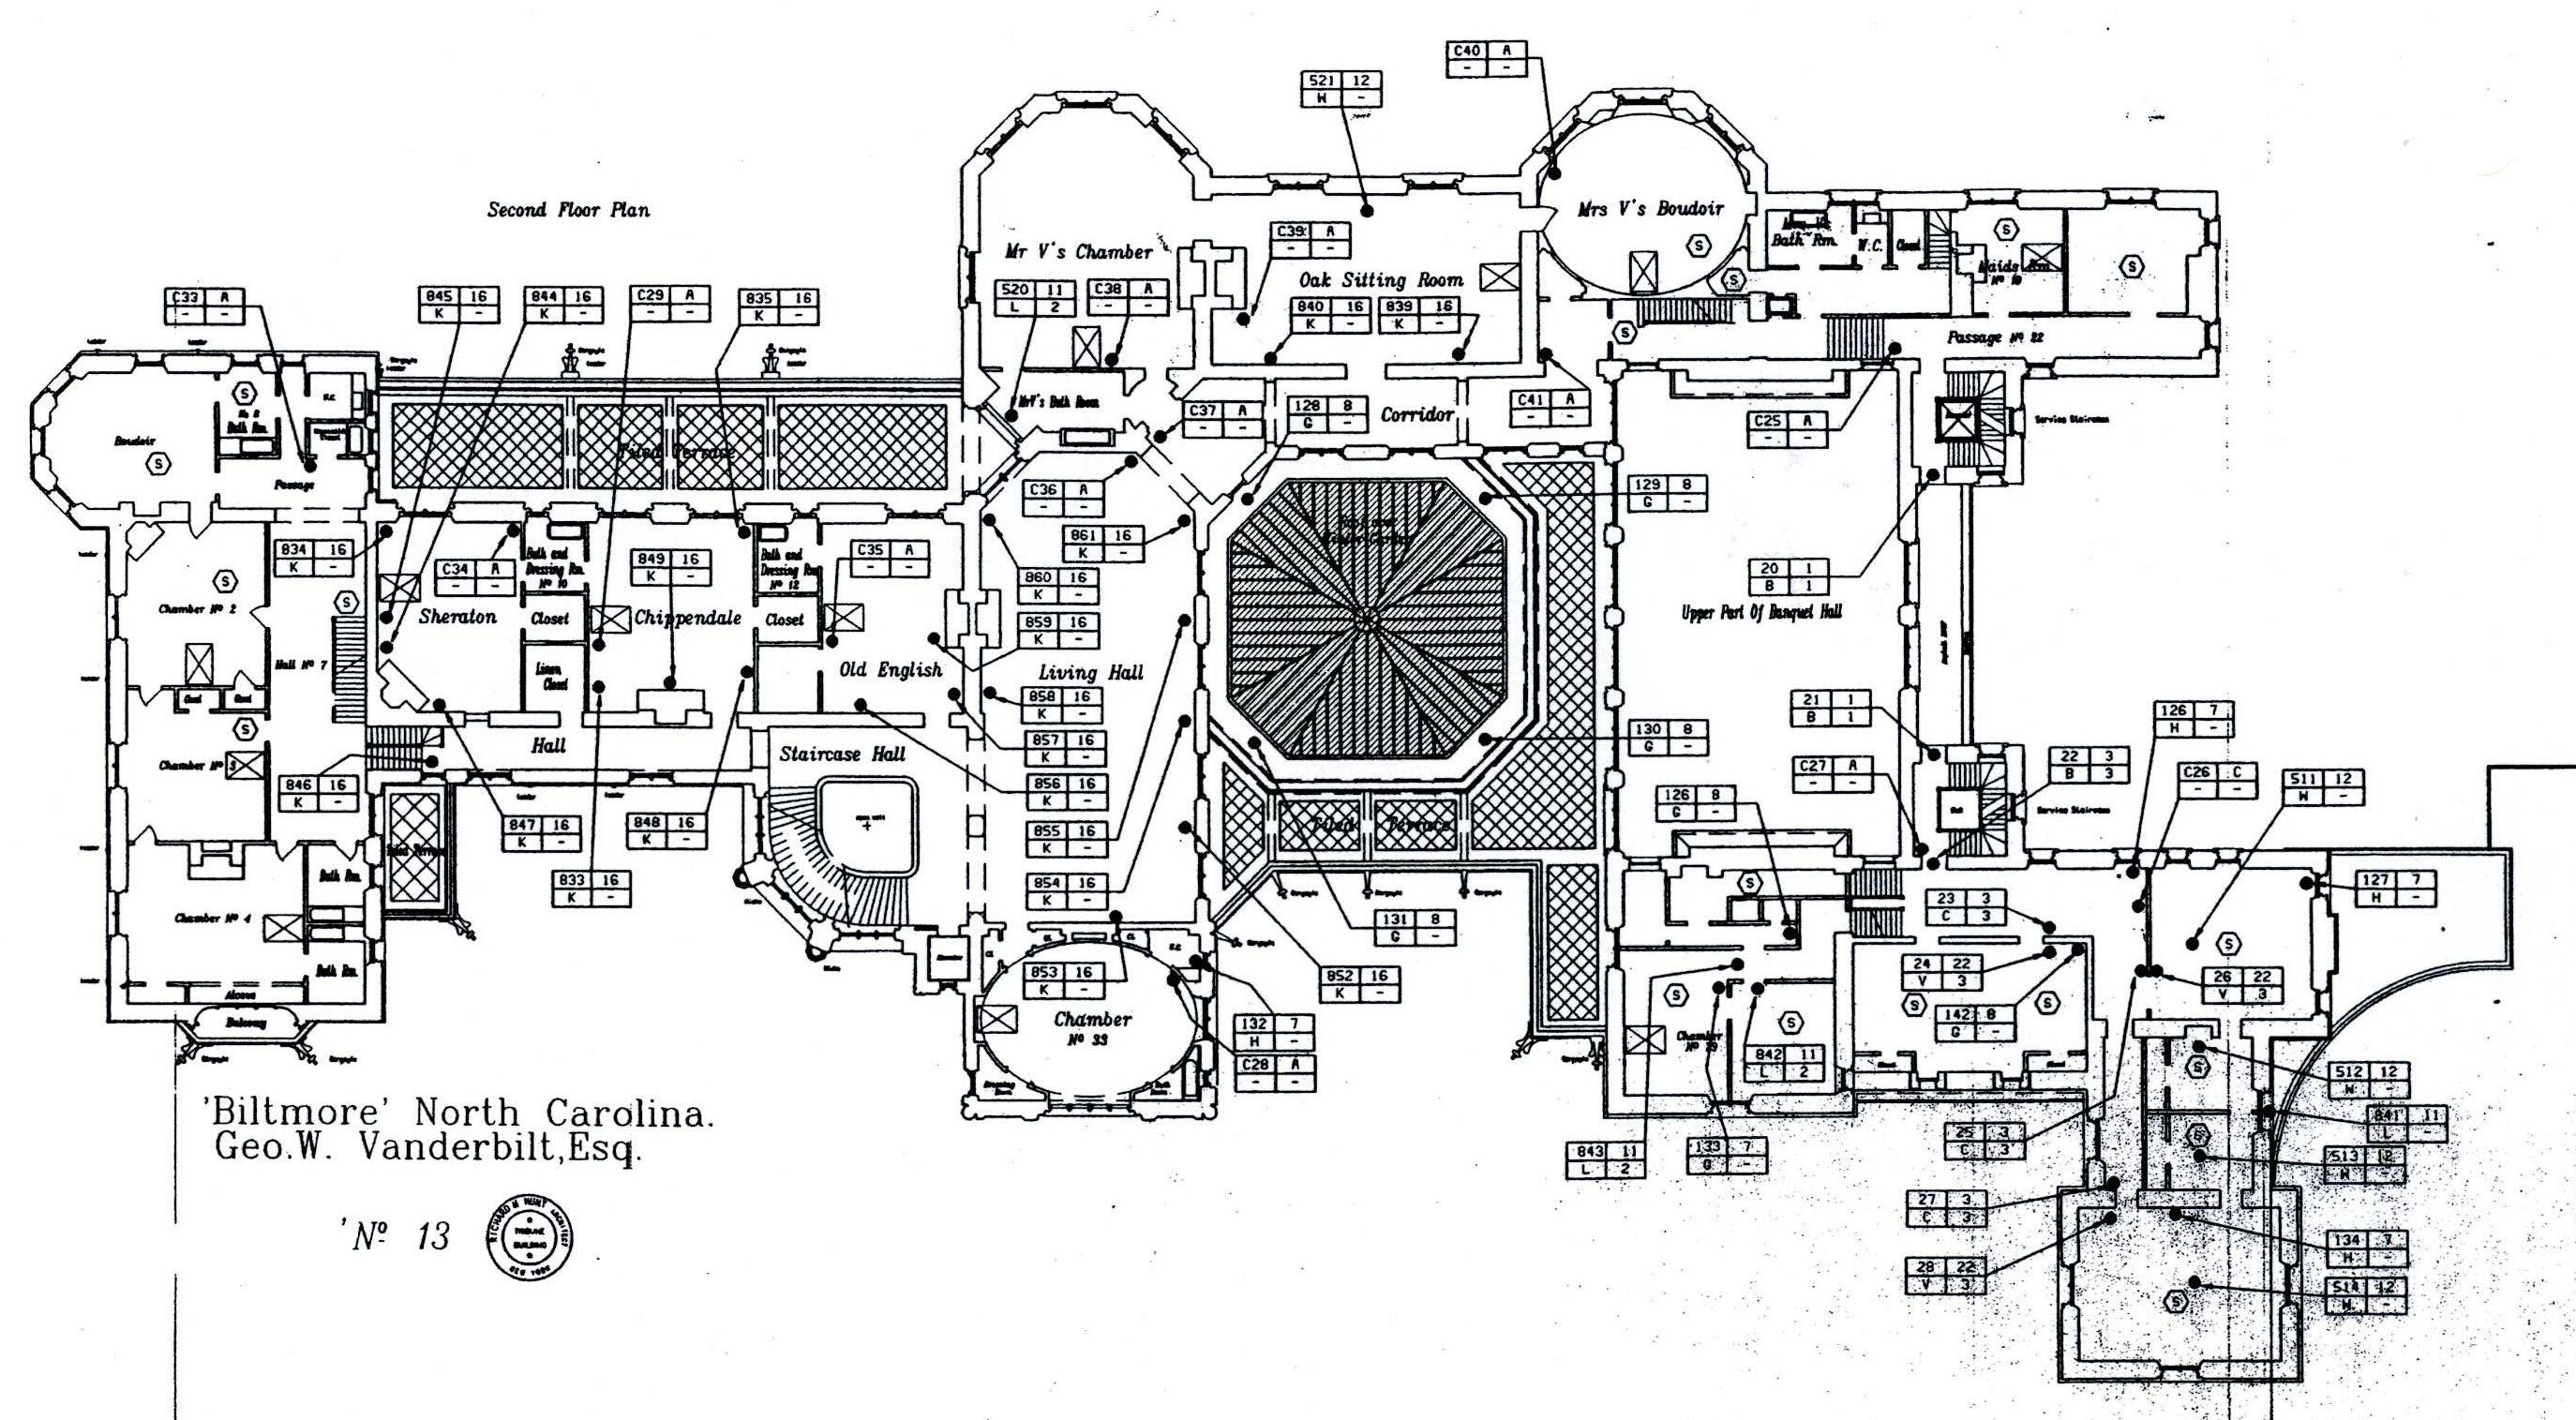 Biltmore Second Floor Plan With Lights Labeled